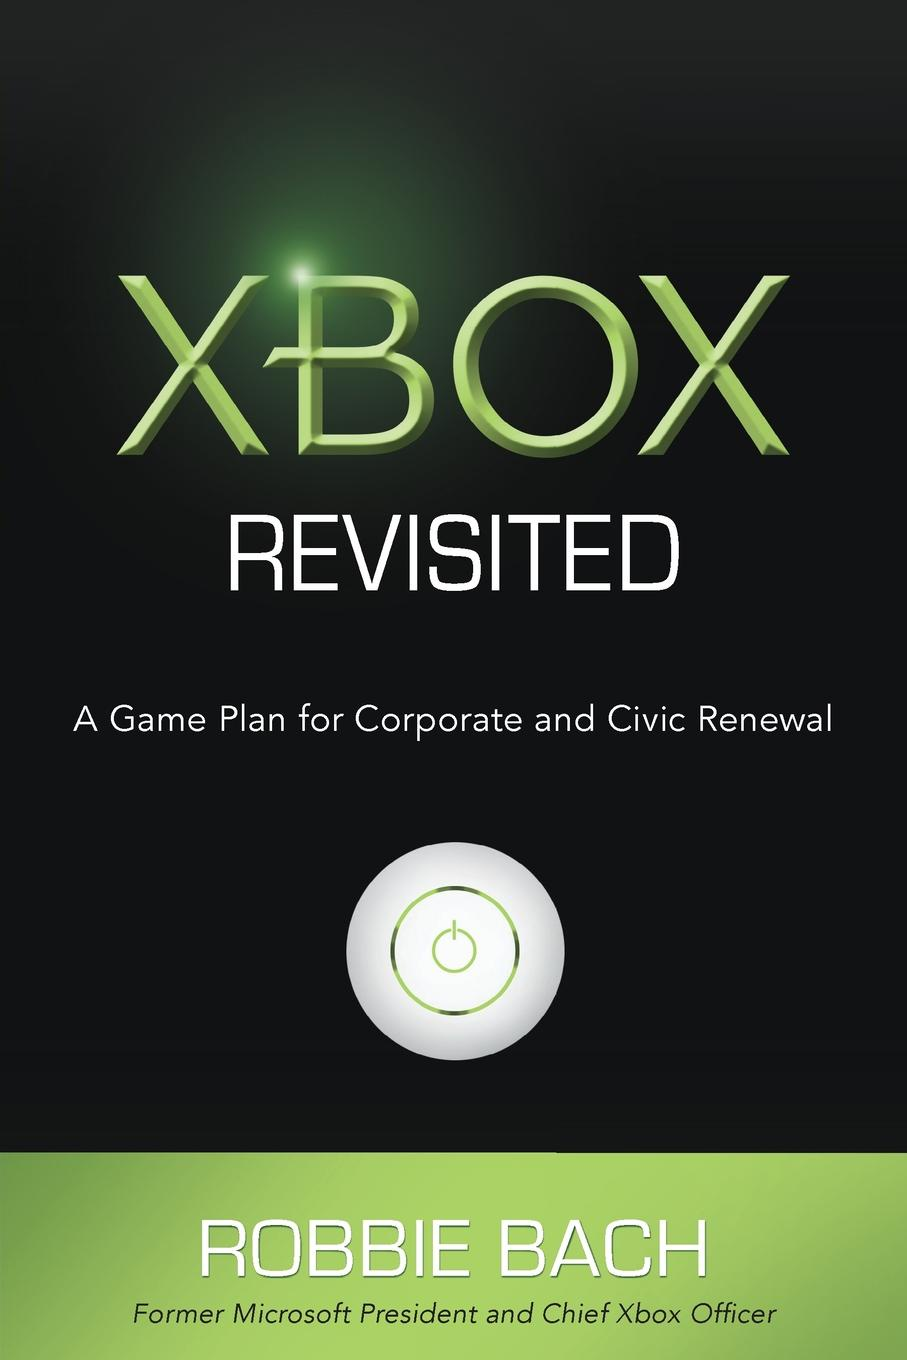 купить Robbie Bach Xbox Revisited. A Game Plan for Public and Civic Renewal дешево